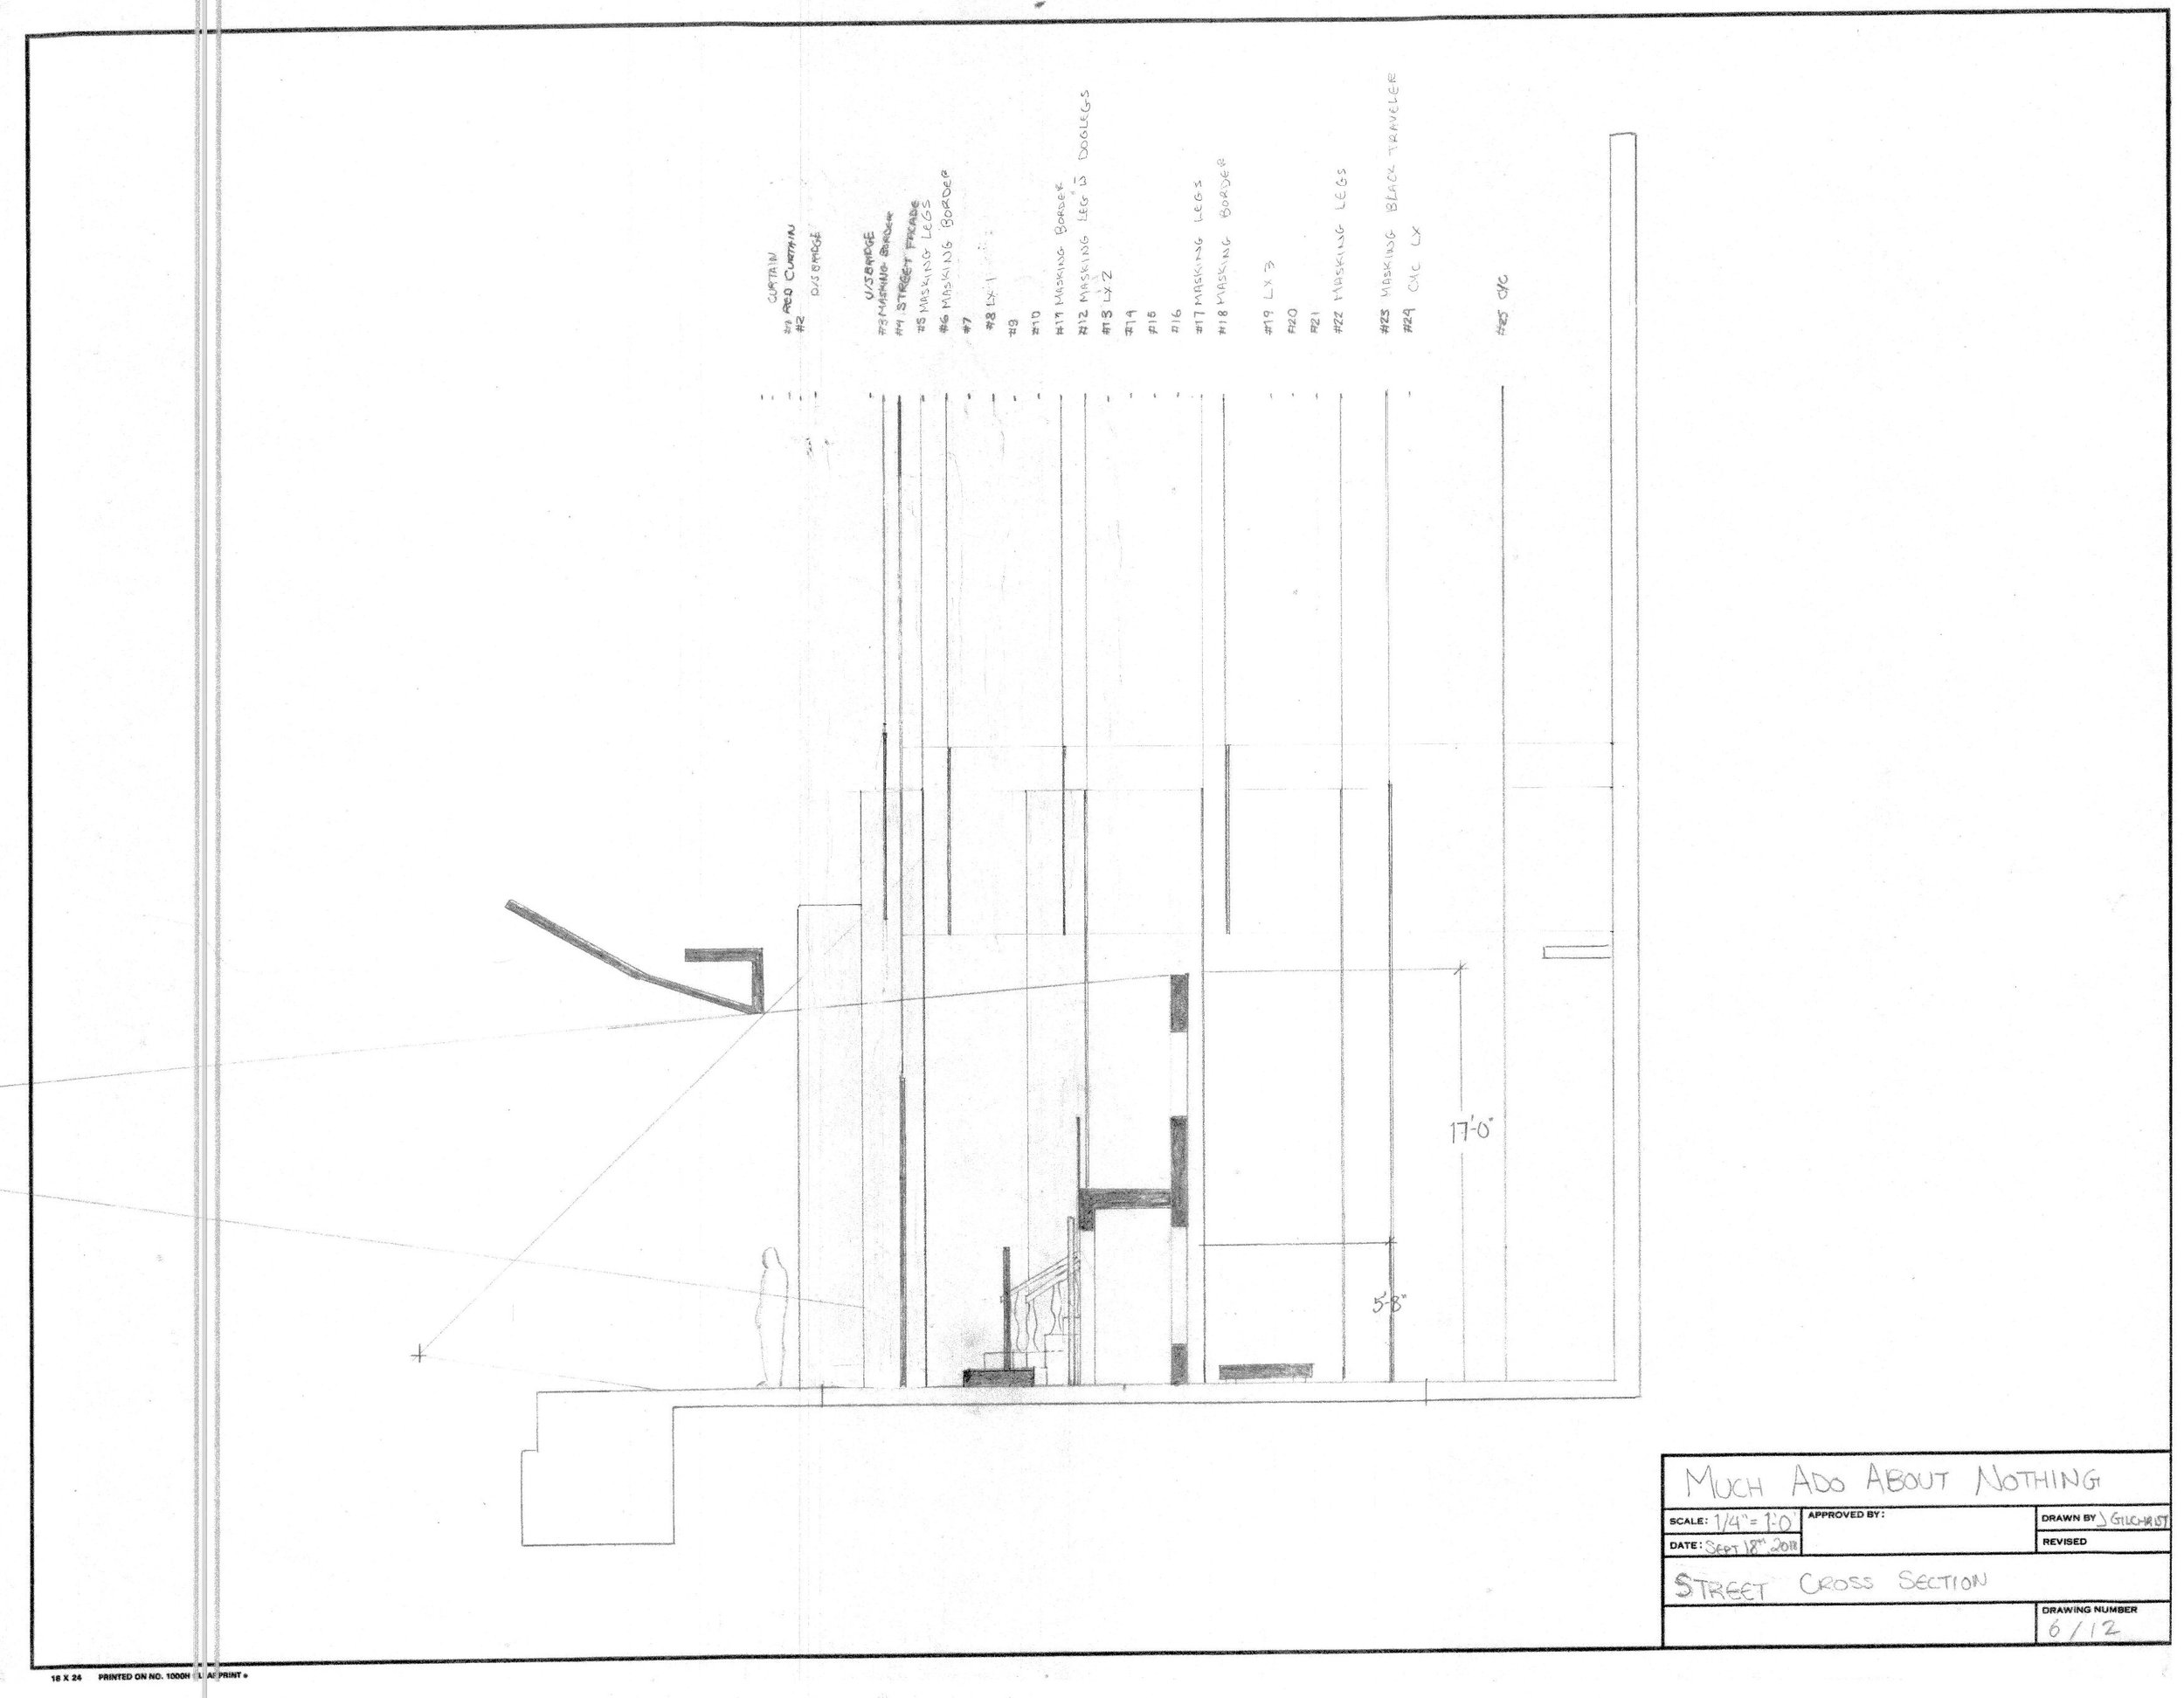 06 Street Cross Section M-page-001.jpg